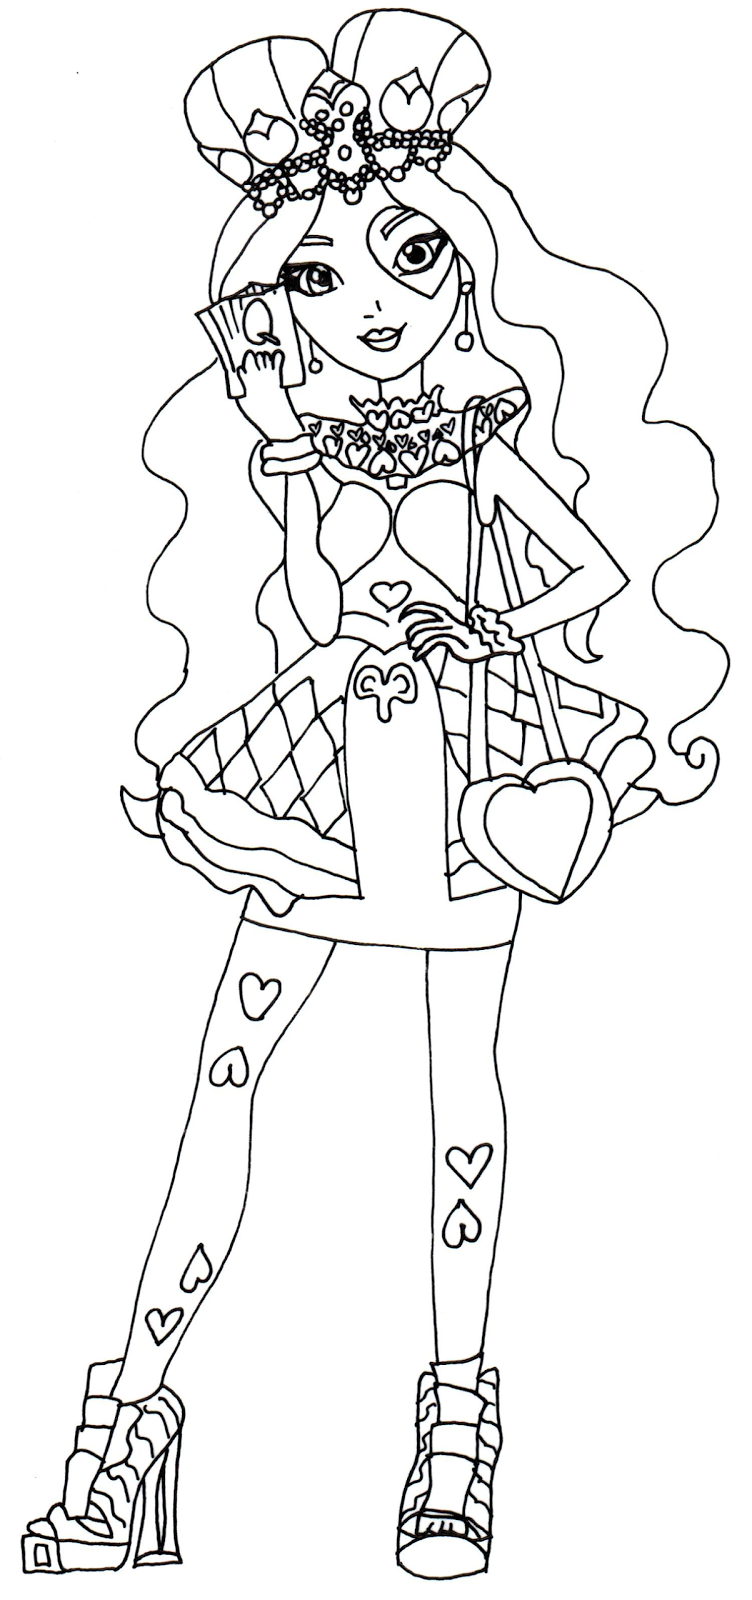 Free Printable Ever After High Coloring Pages Lizzie Hearts Ever After High Coloring Page